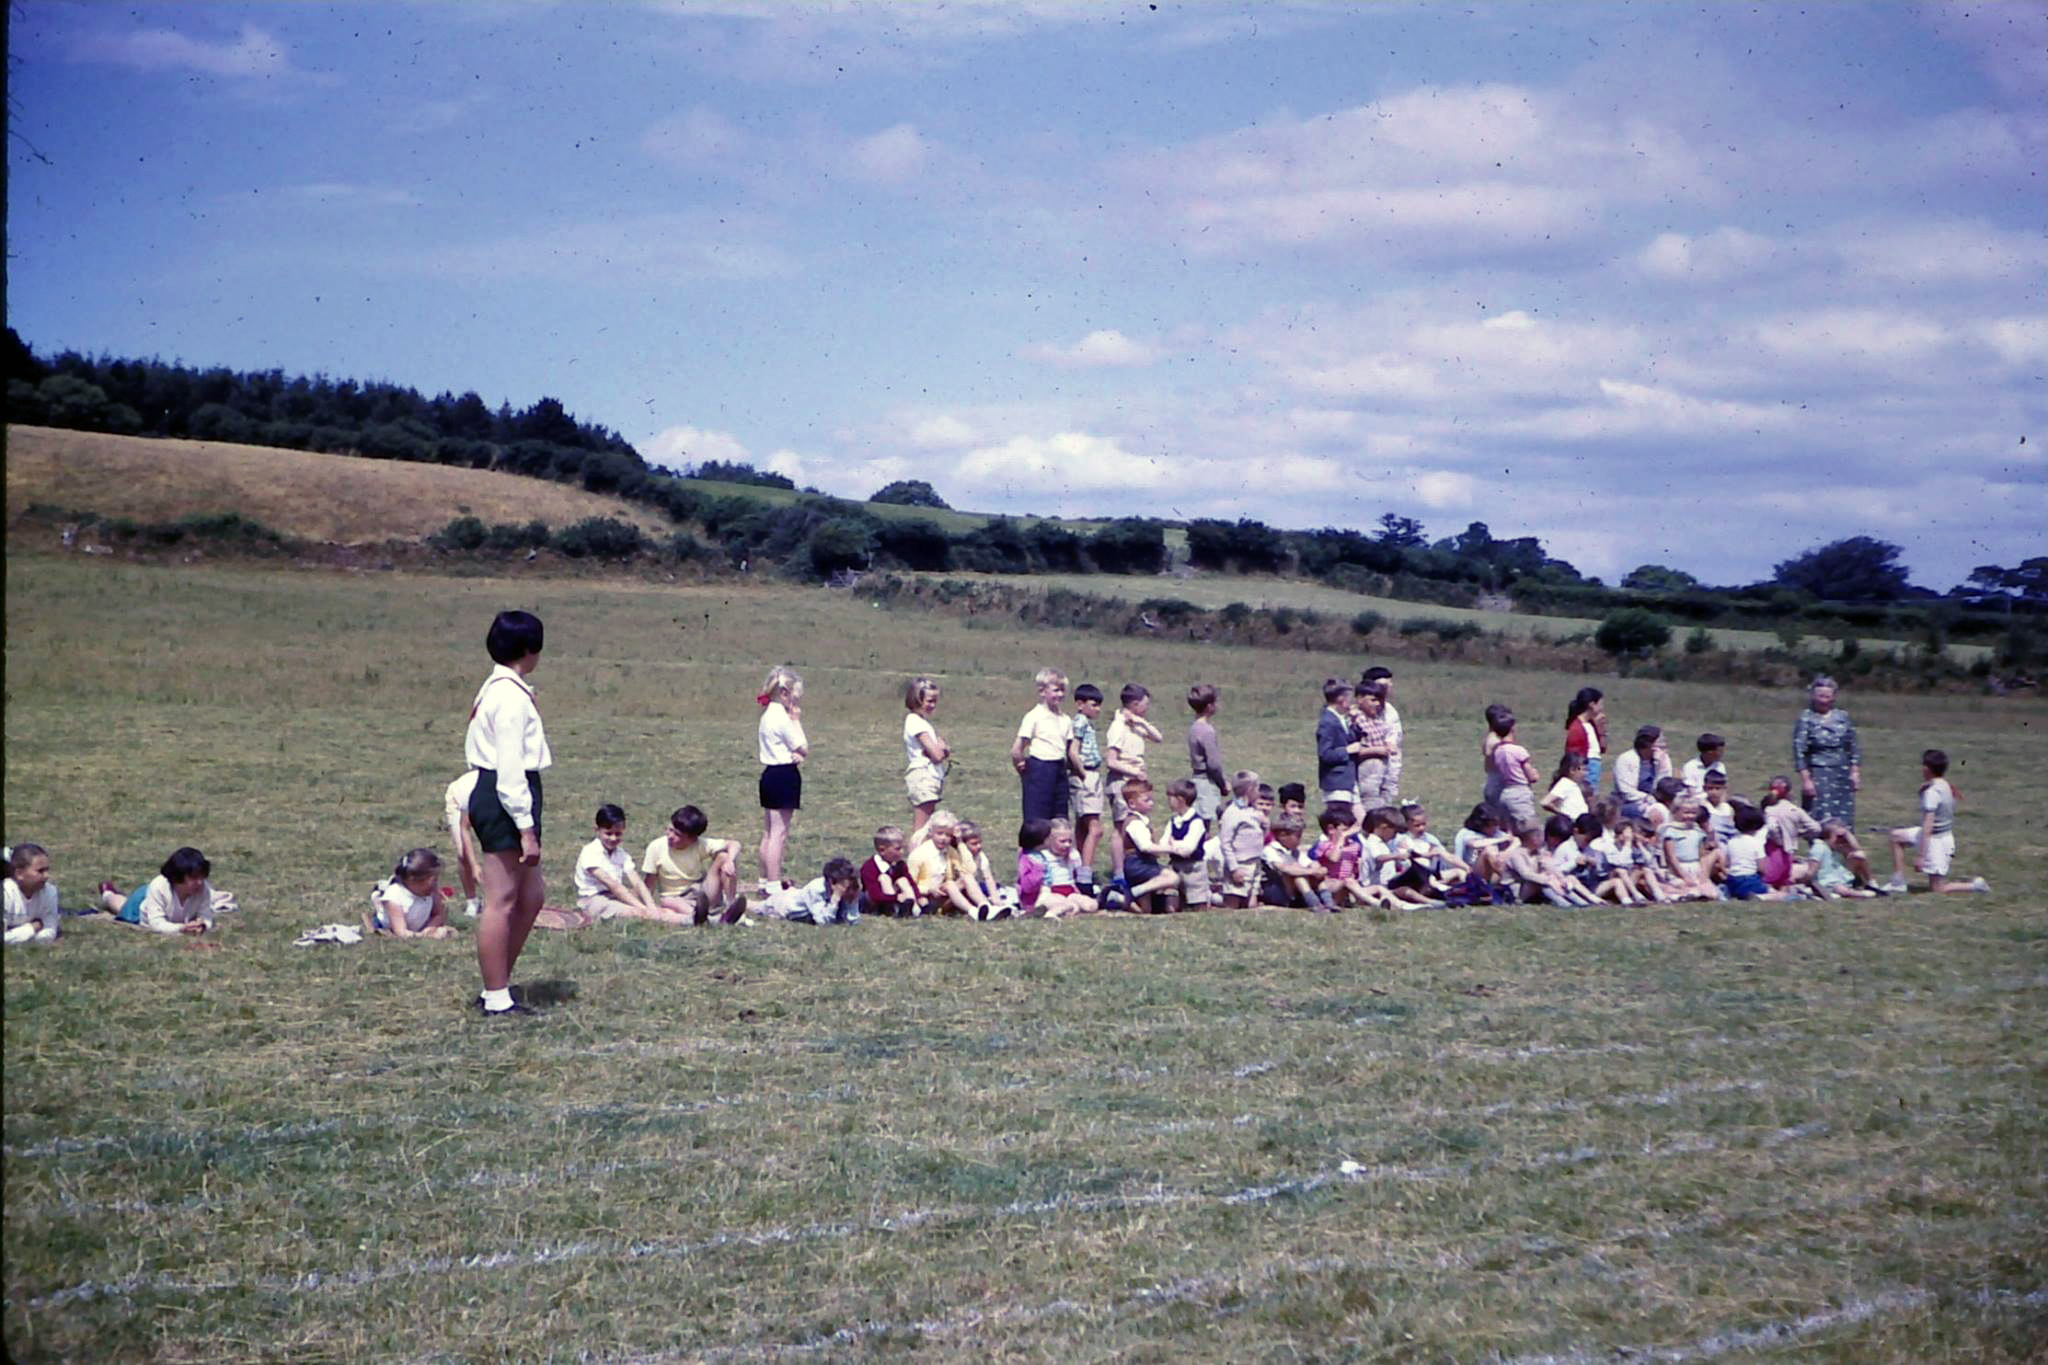 st-stephens-school-sports-day-in-1961-photo-courtesy-of-chris-gynn